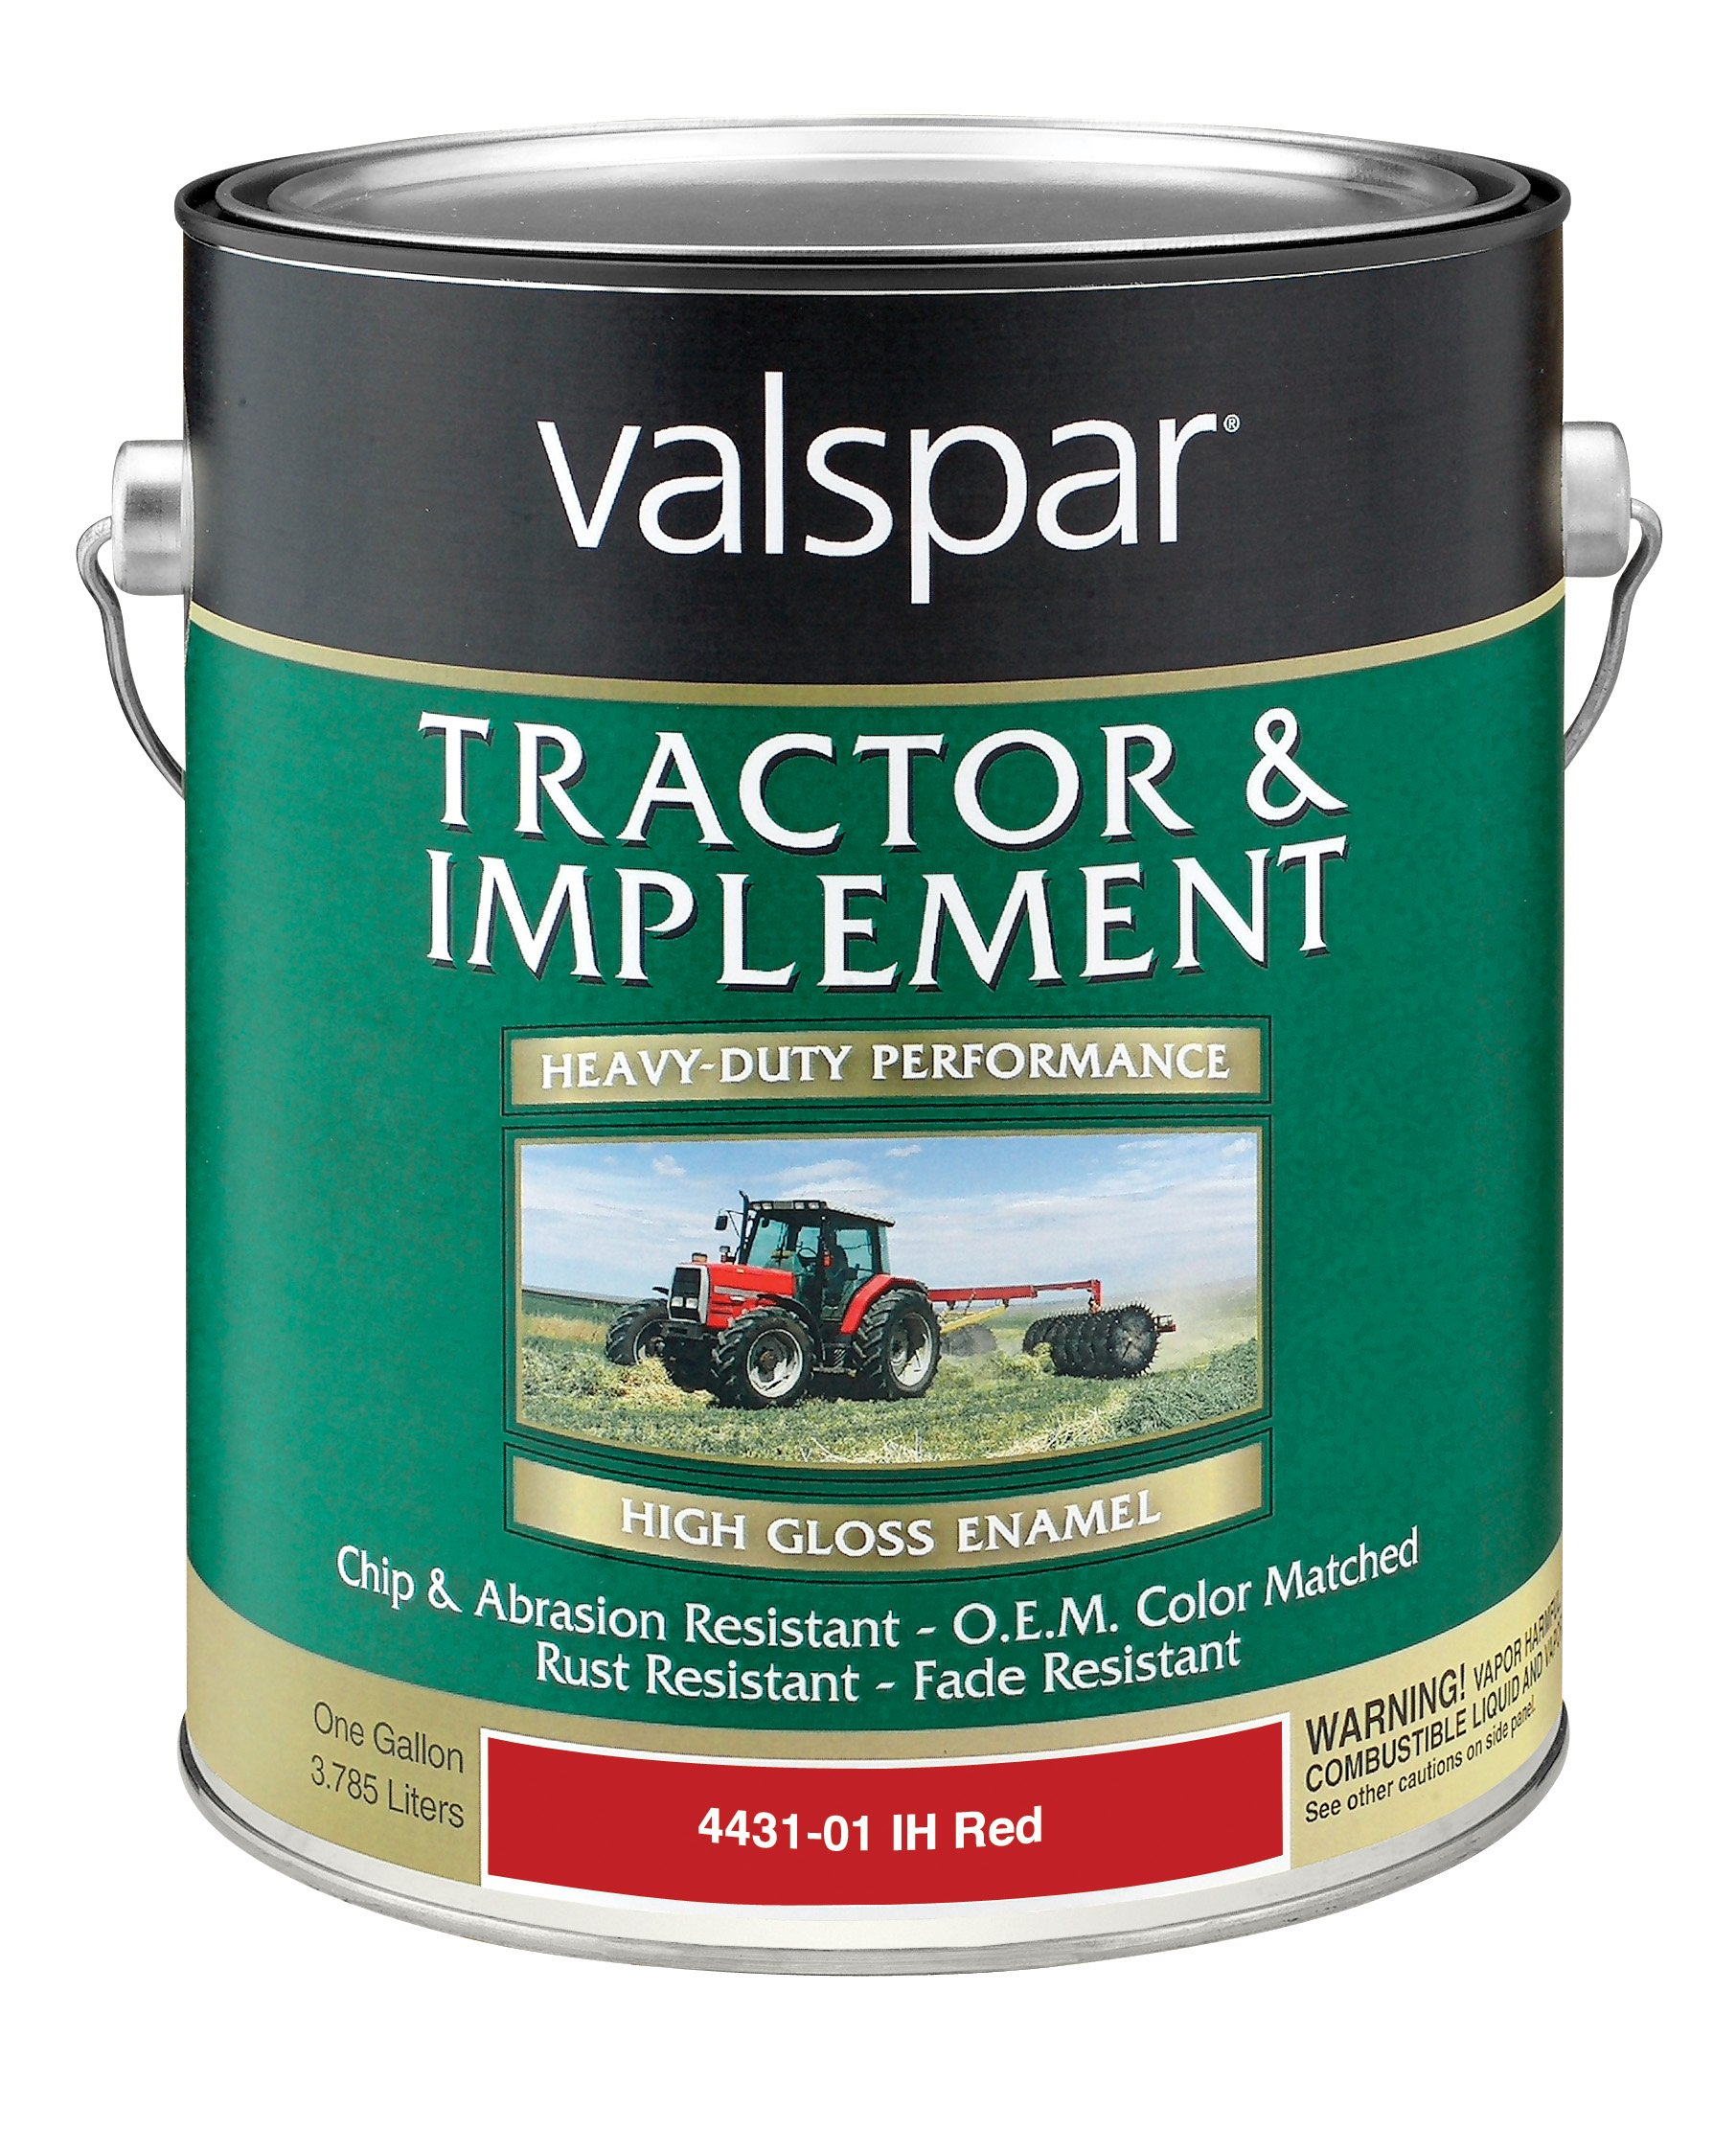 Valspar 4431-01 IH Red Tractor and Implement Paint - 1 Gallon